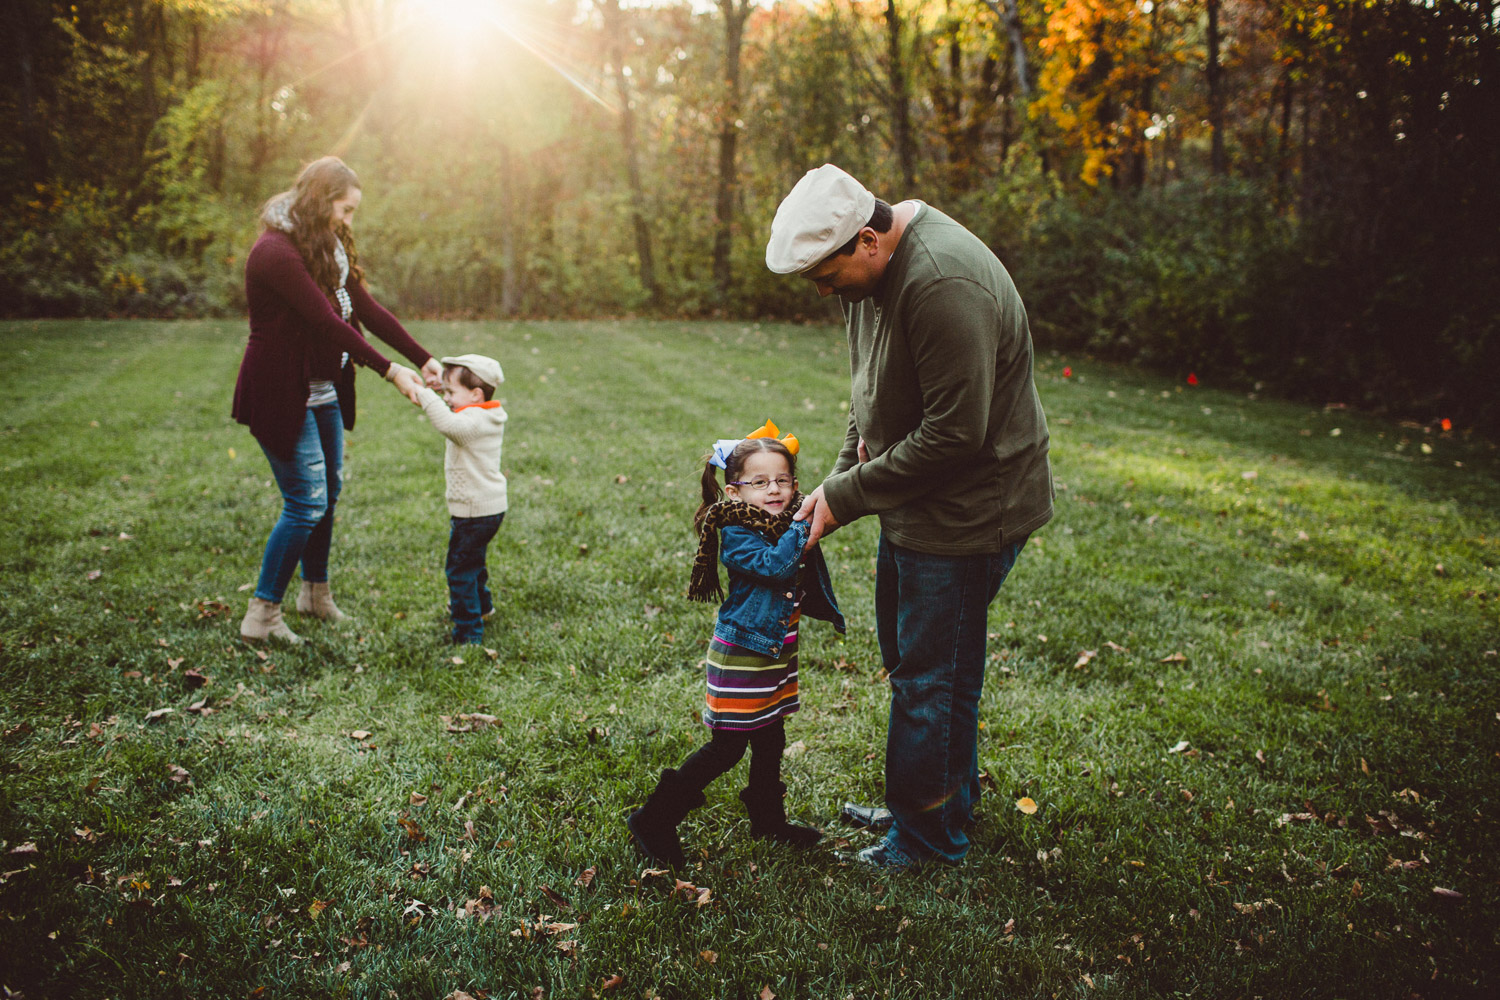 Family dancing together in wide open field